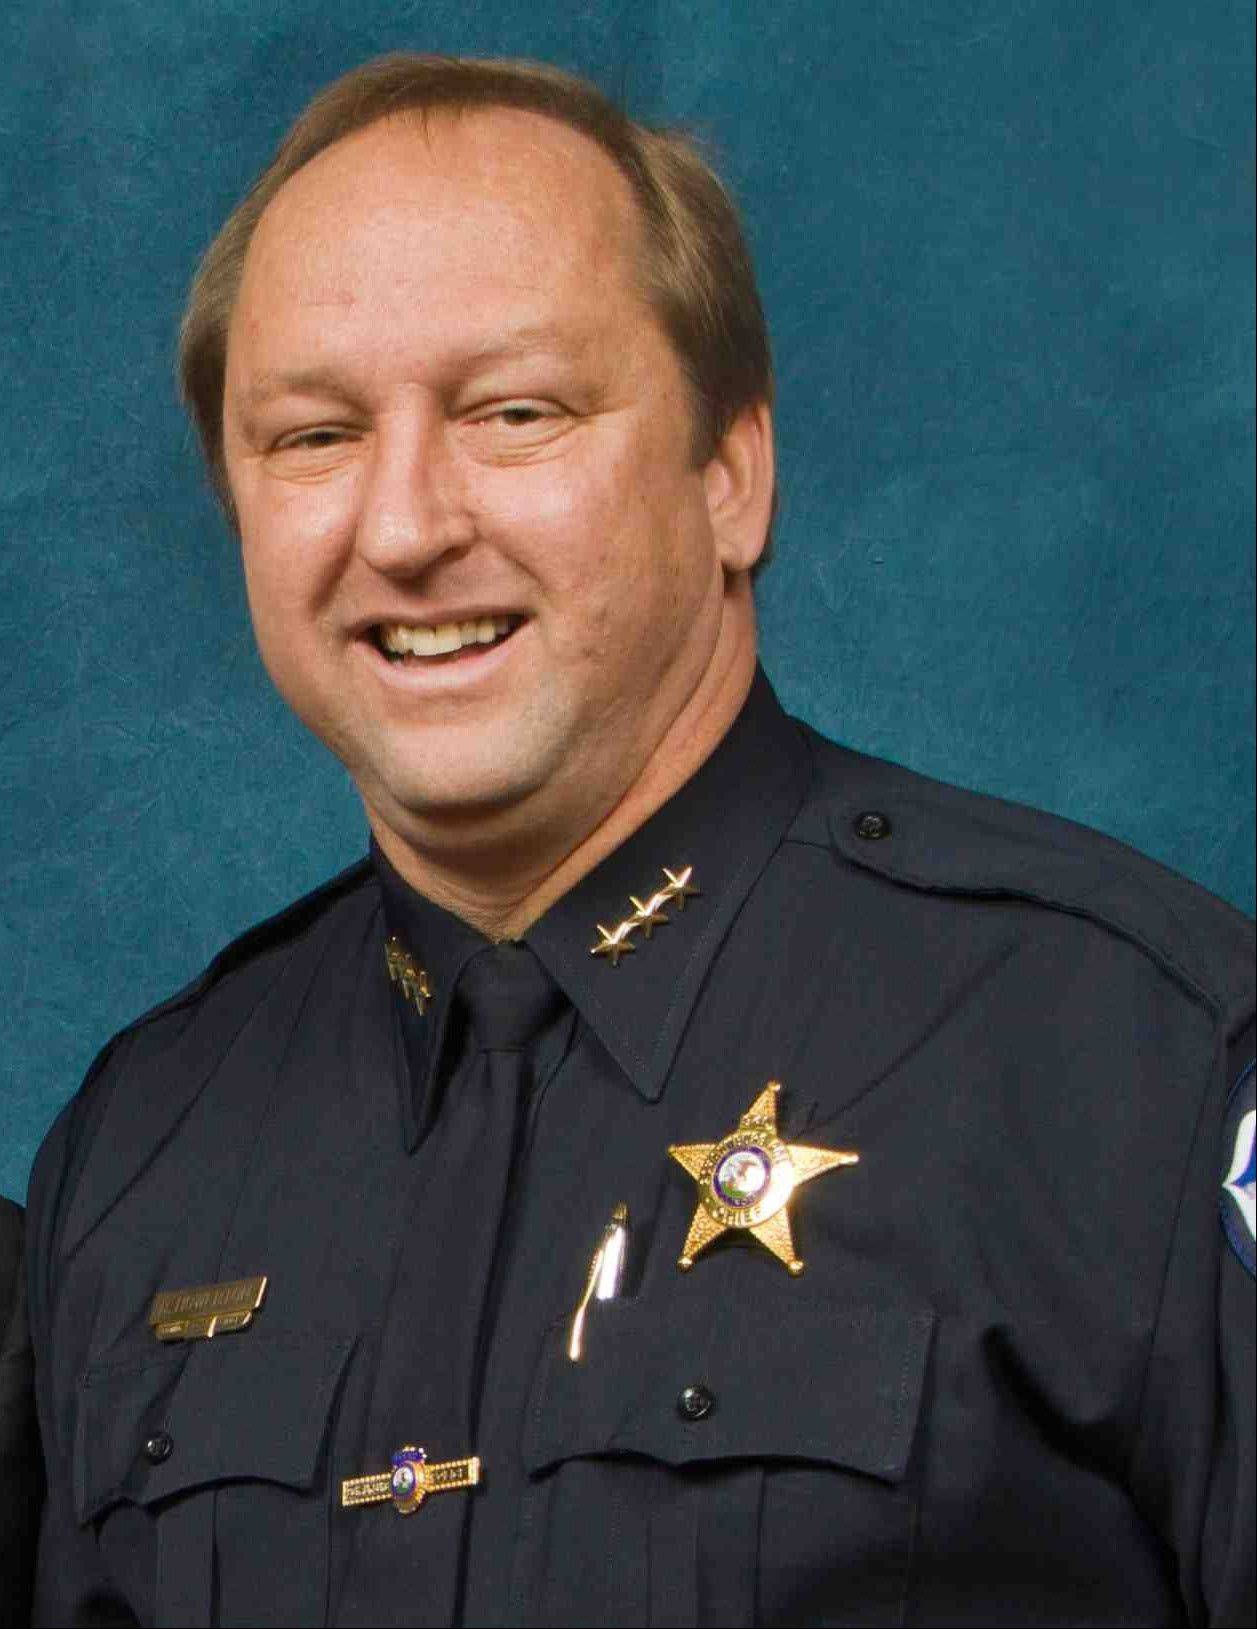 Schaumburg Police Chief Brian S. Howerton